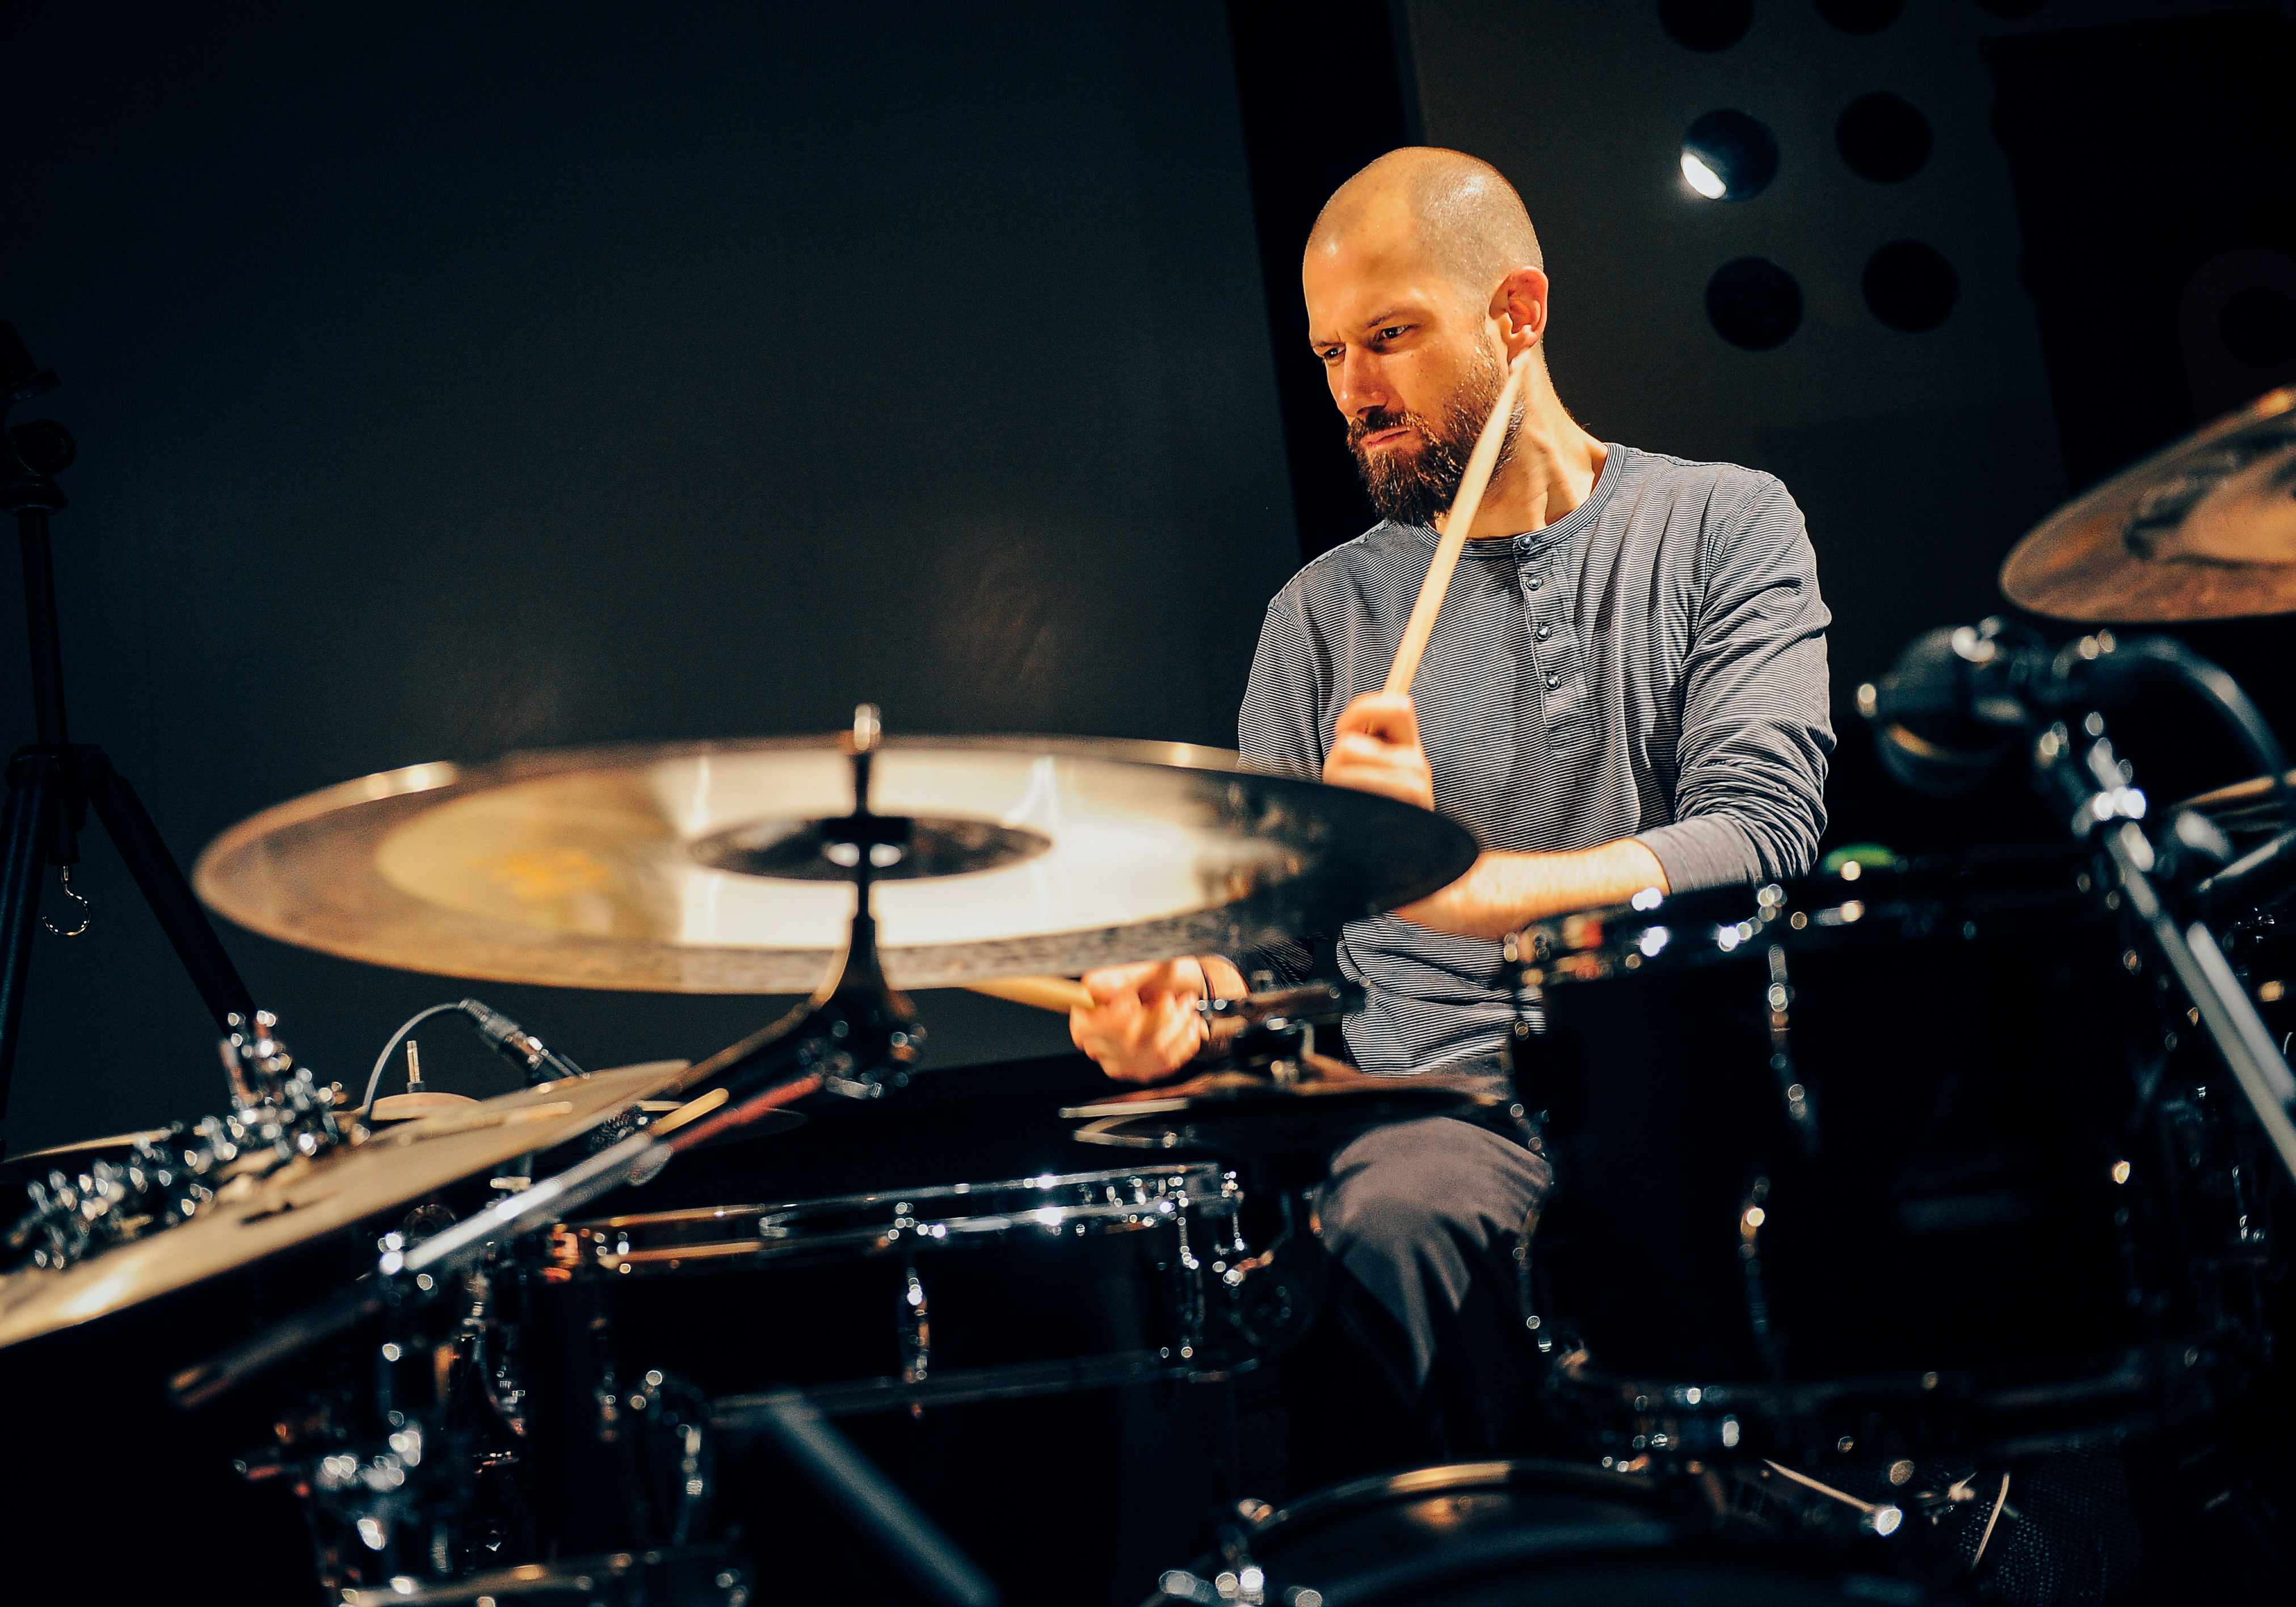 bennygreb-re-size-1000-x-700.png